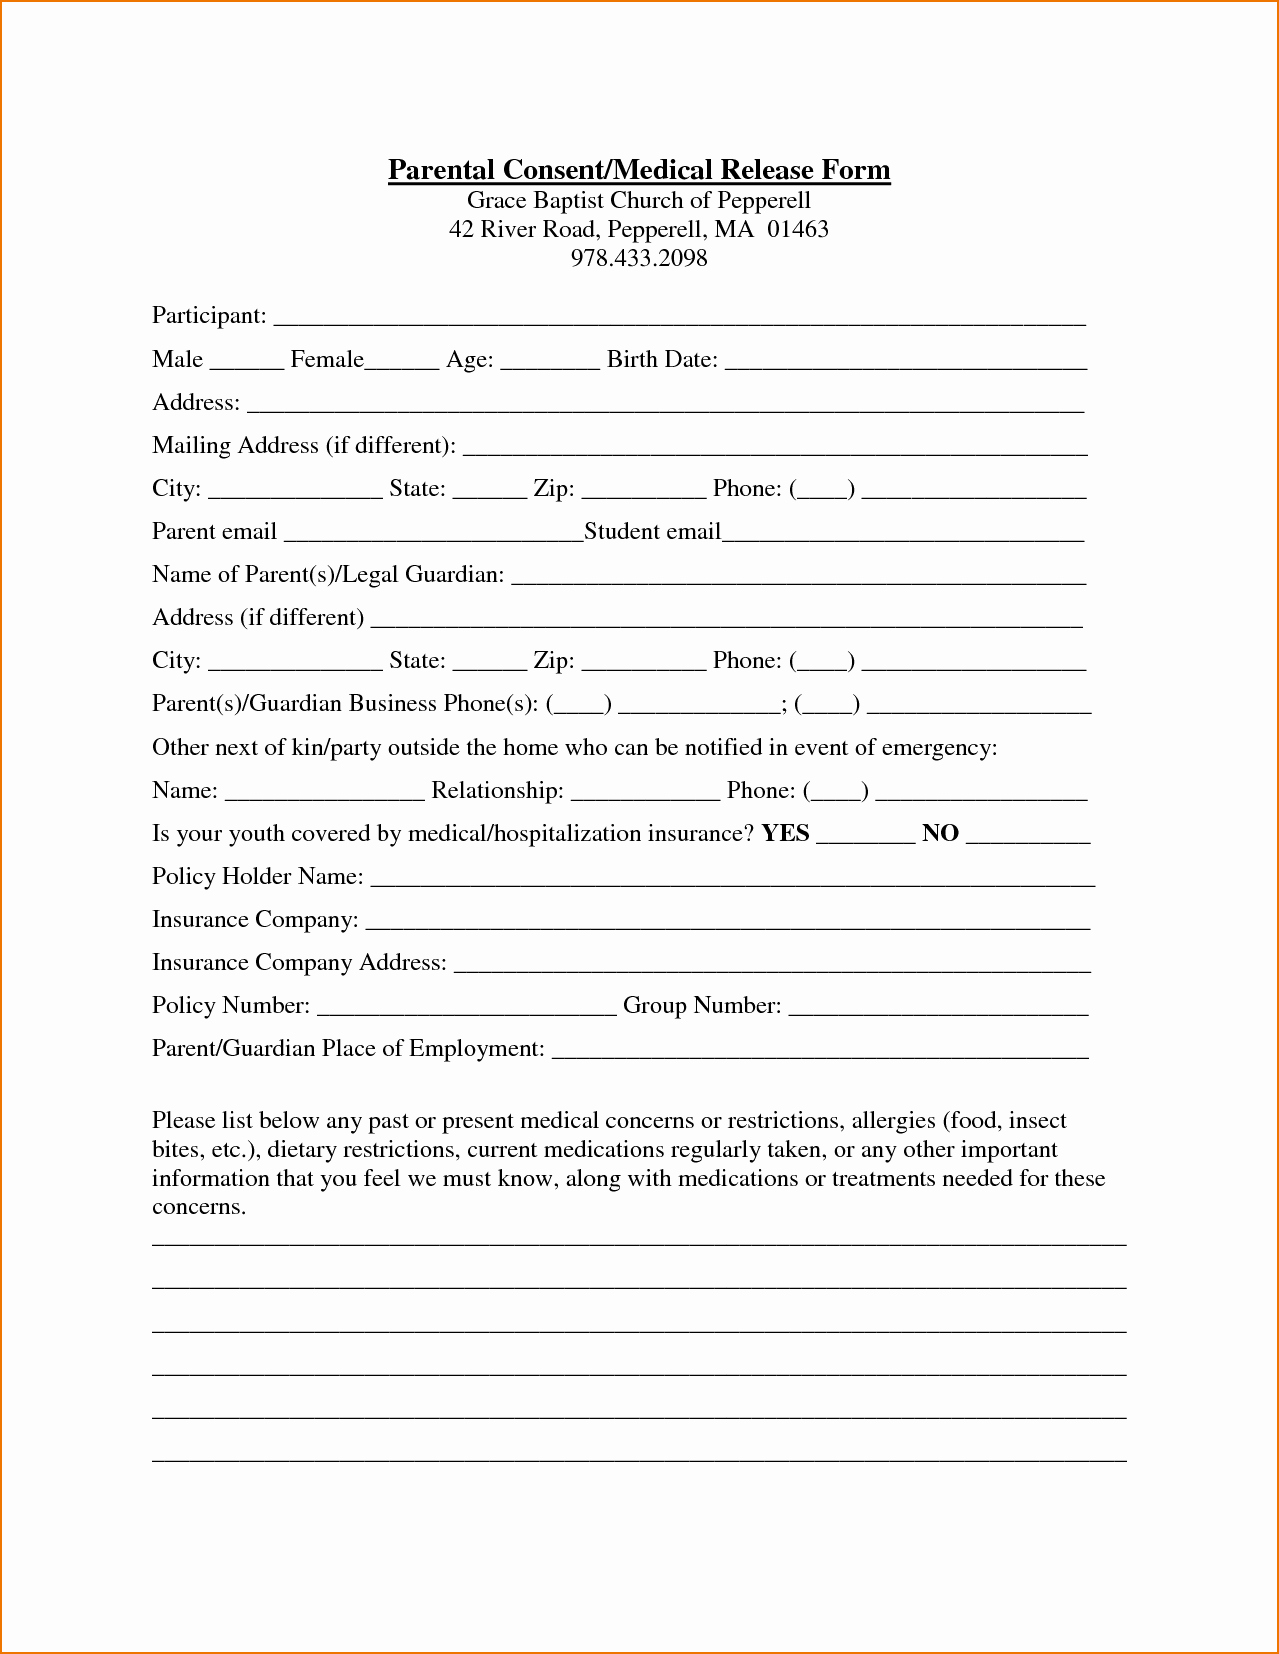 Form Medical Authorization form